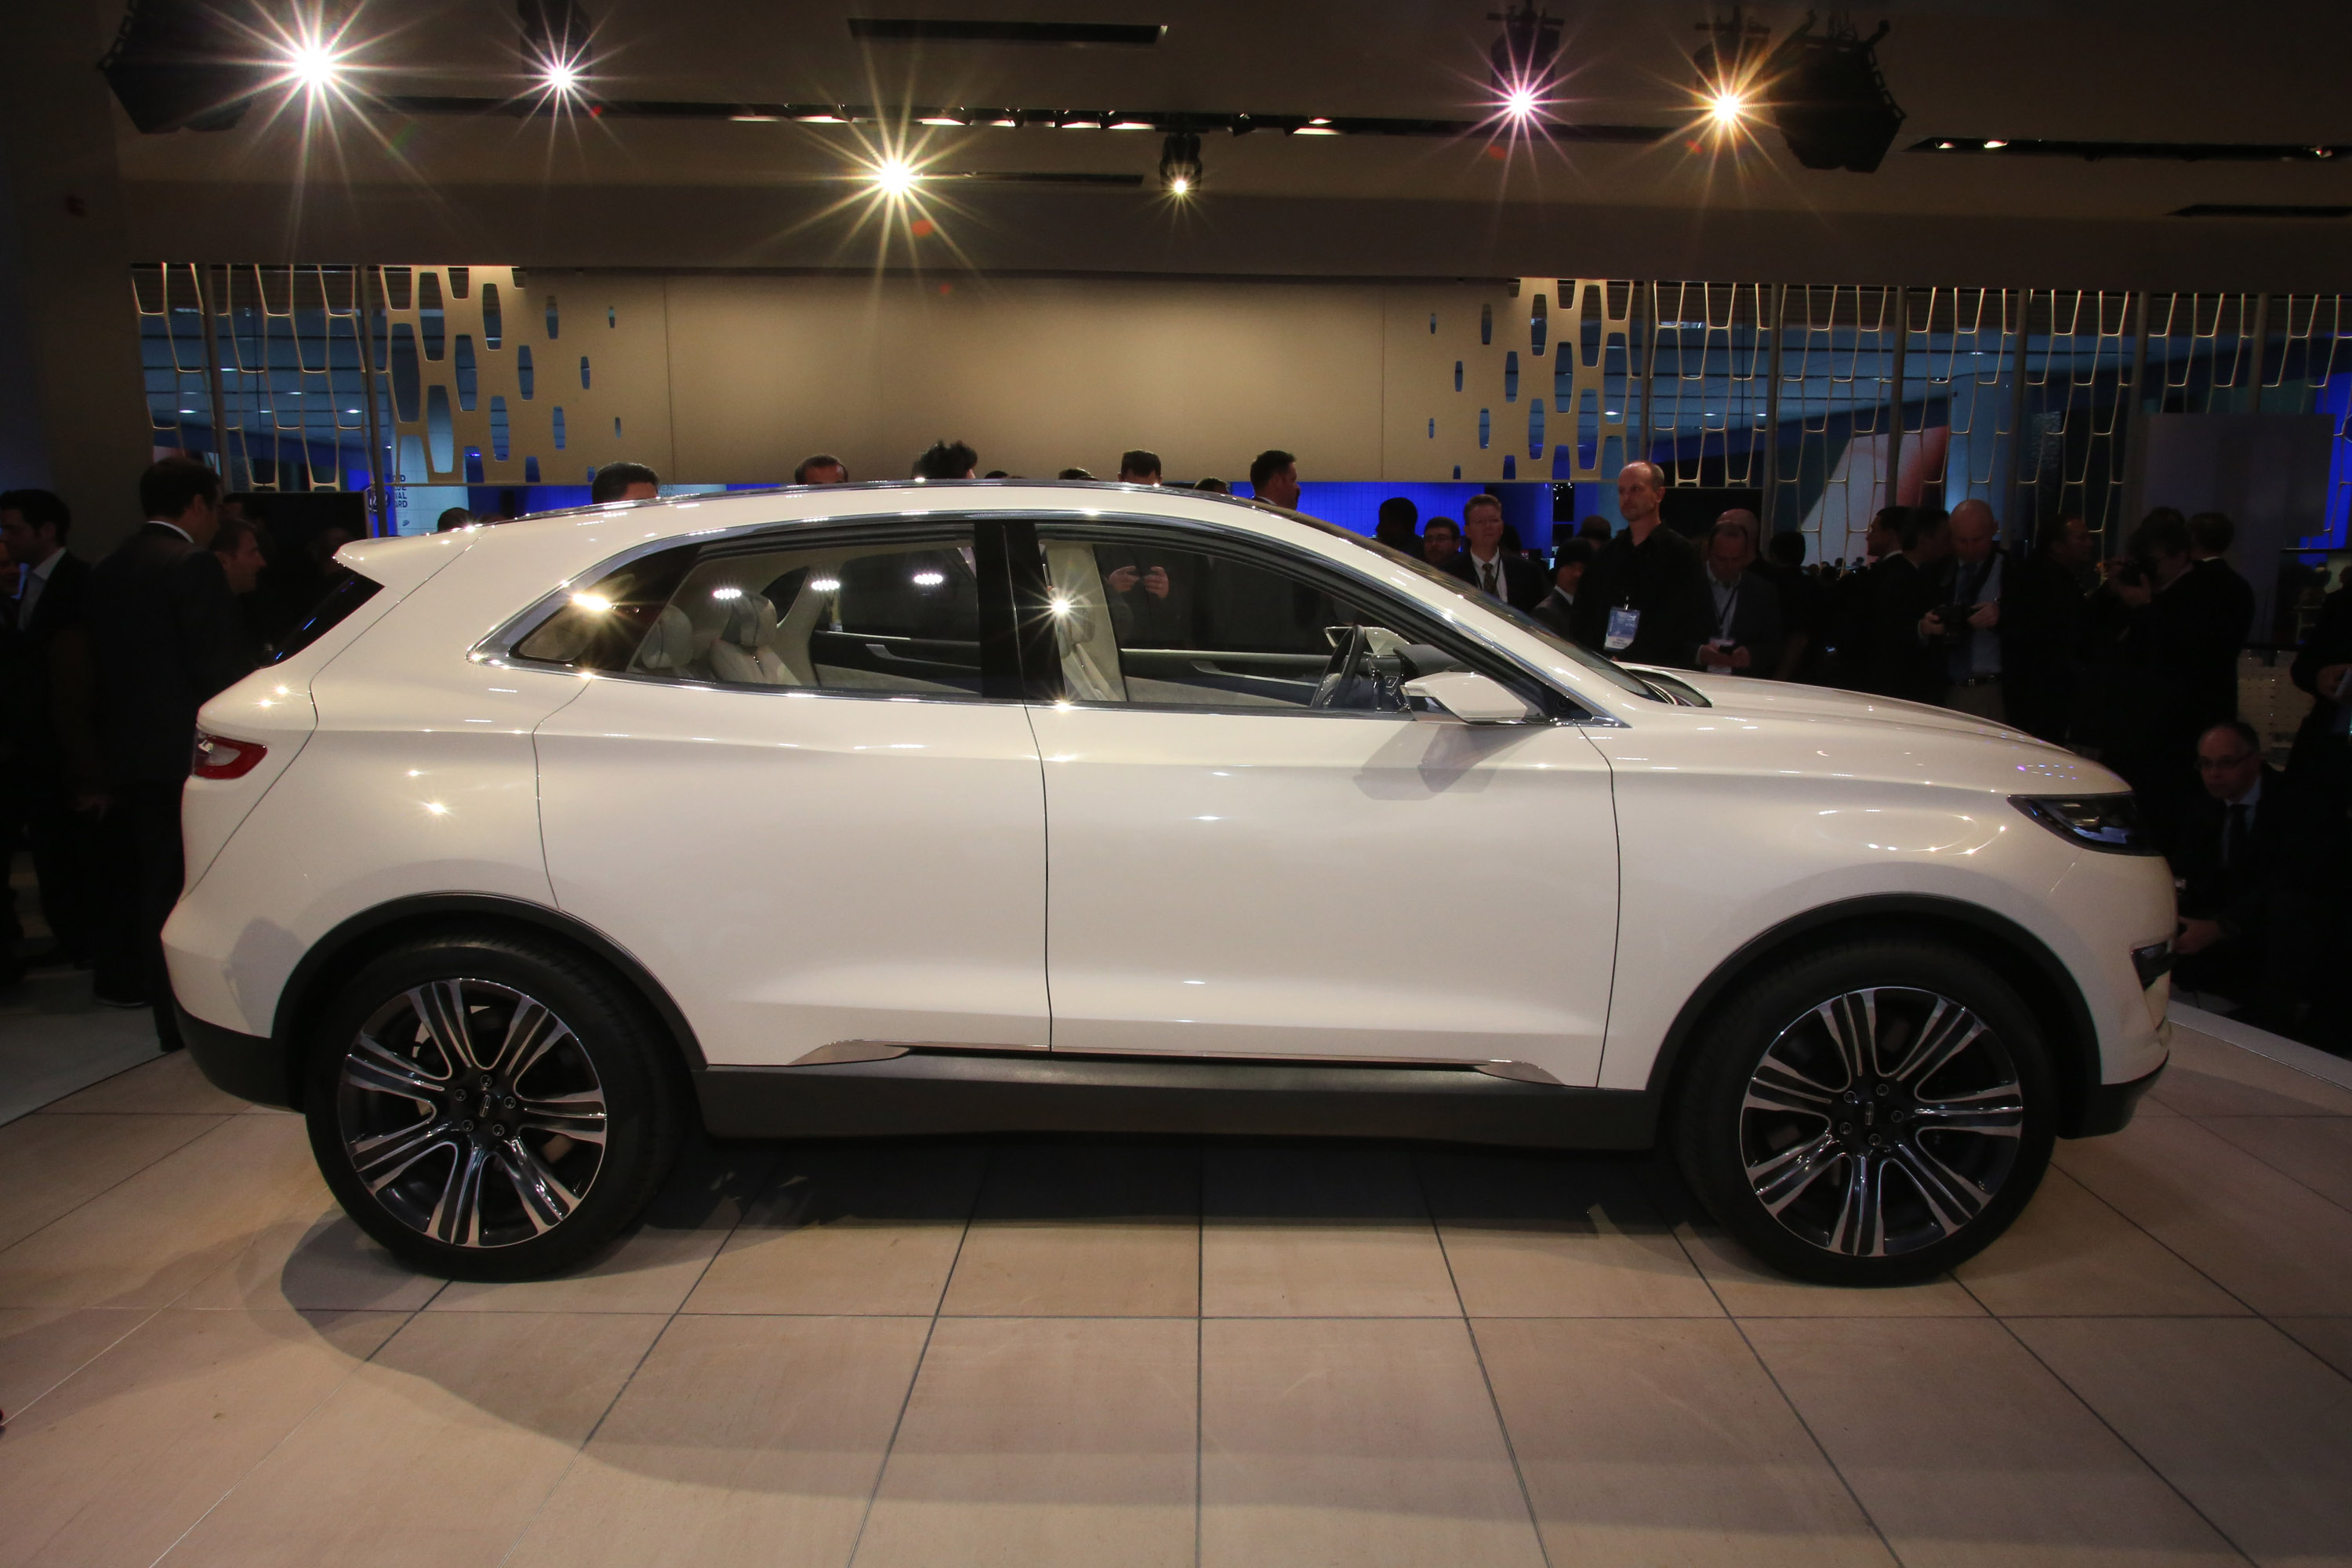 Lincoln MKC Concept Detroit 2013 - Picture 79556